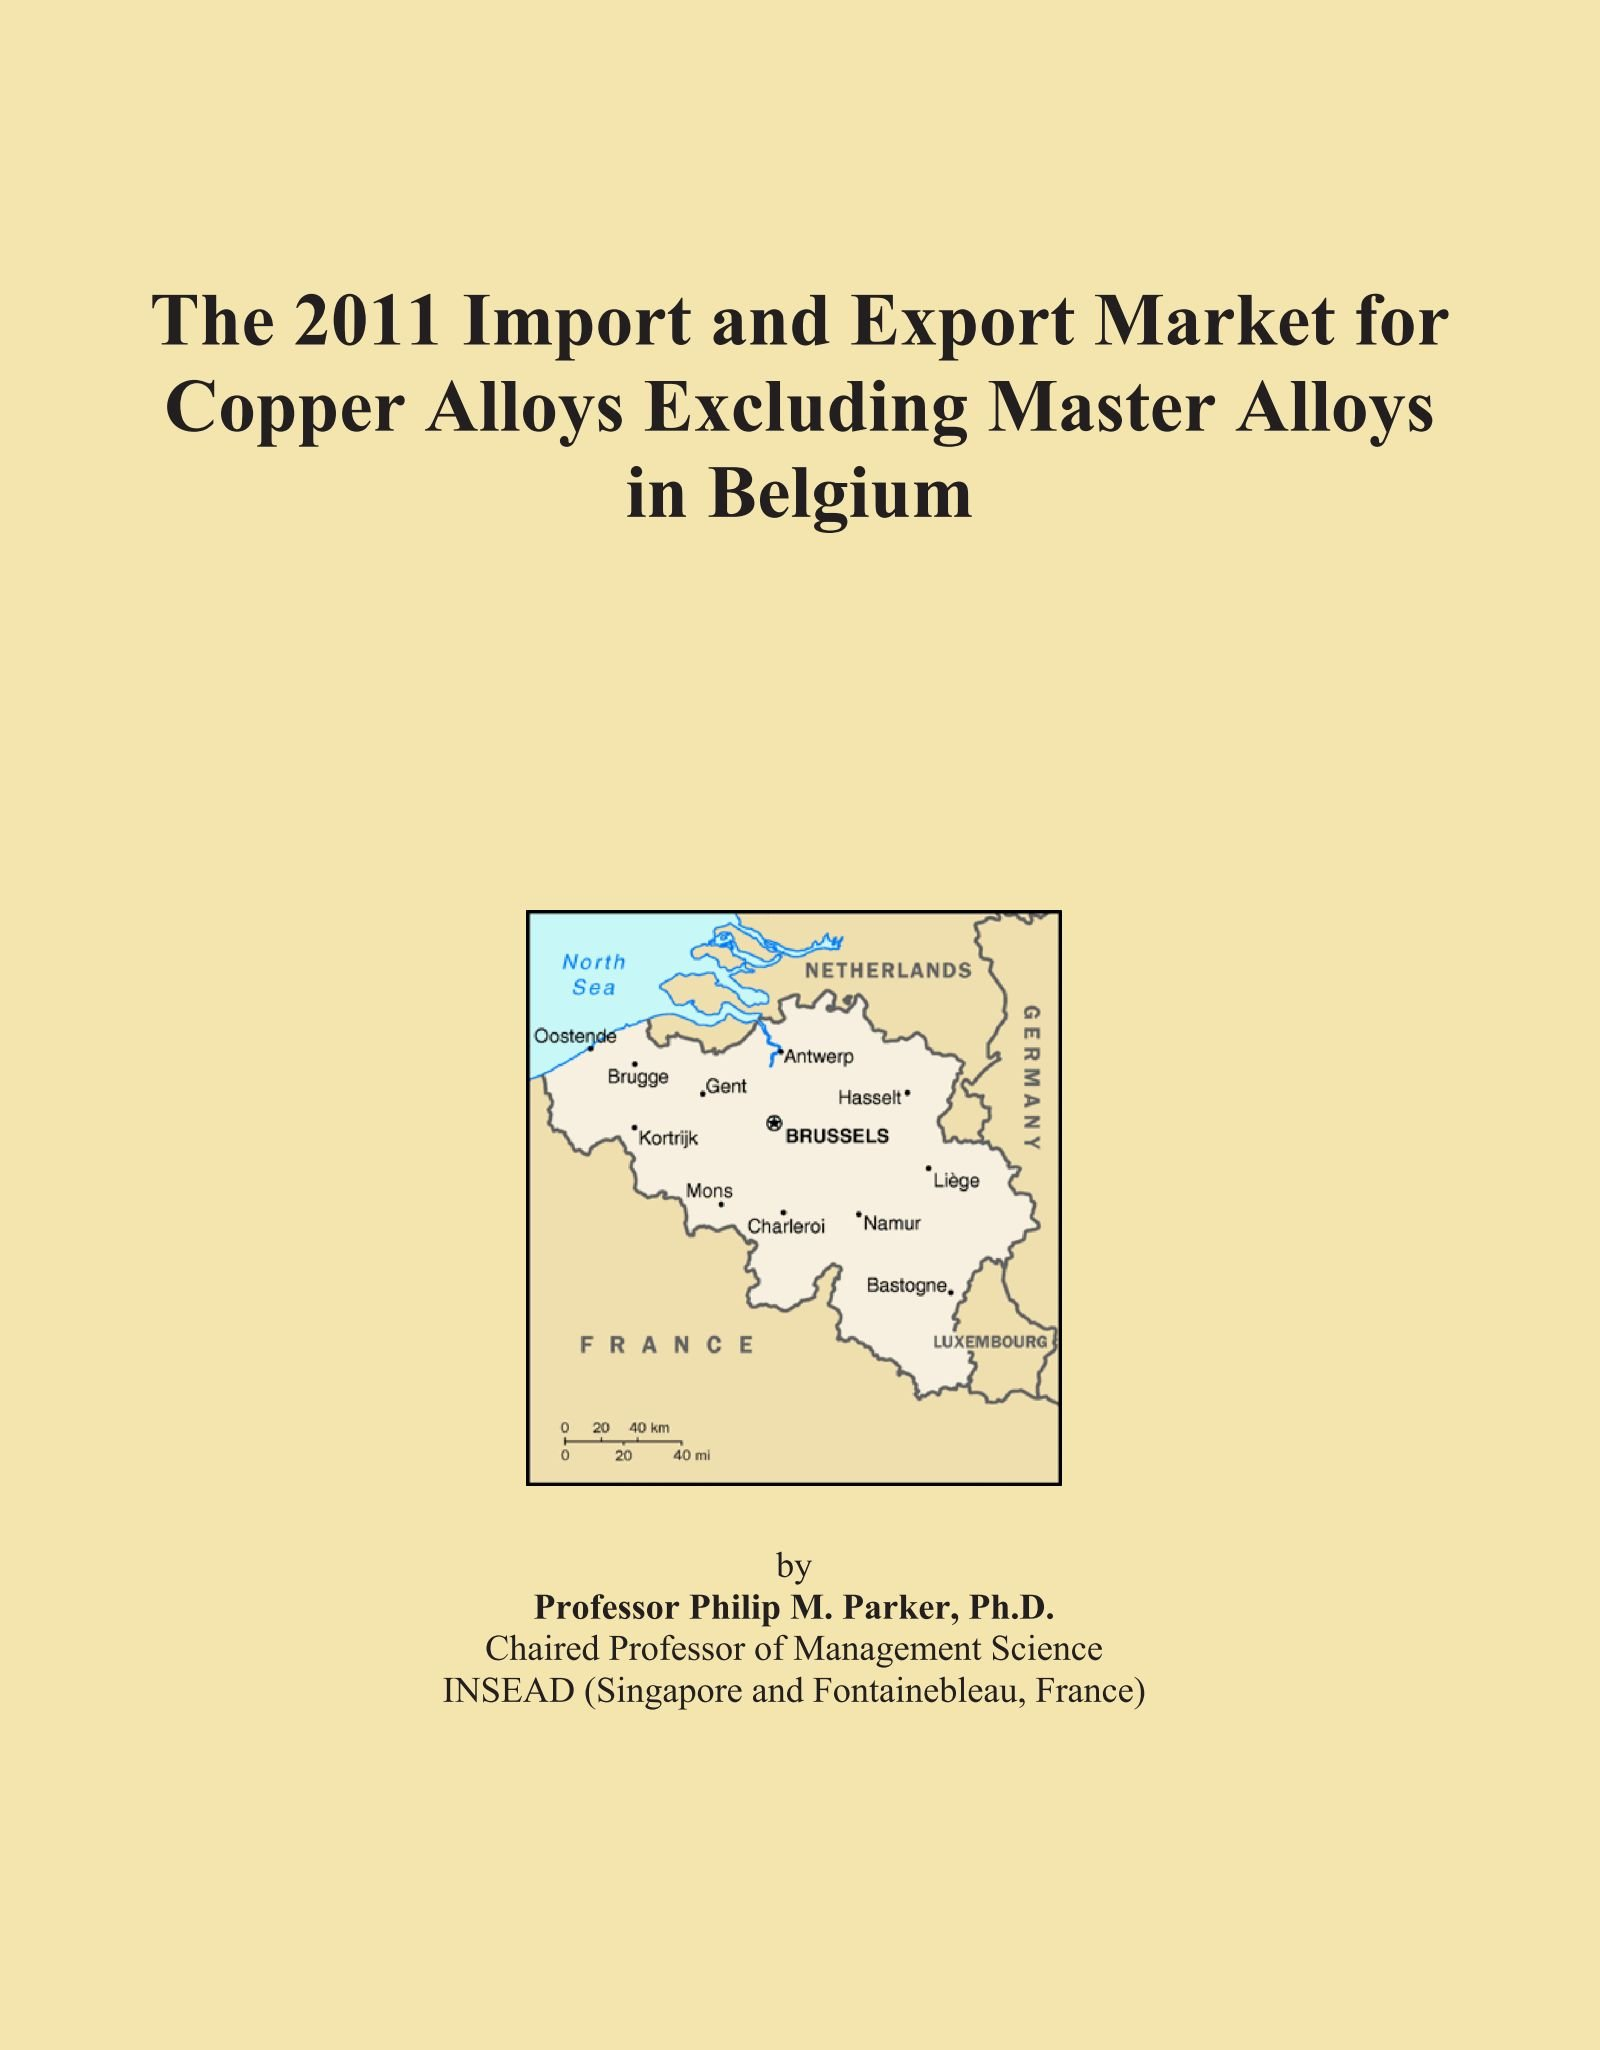 The 2011 Import and Export Market for Copper Alloys Excluding Master Alloys in Belgium pdf